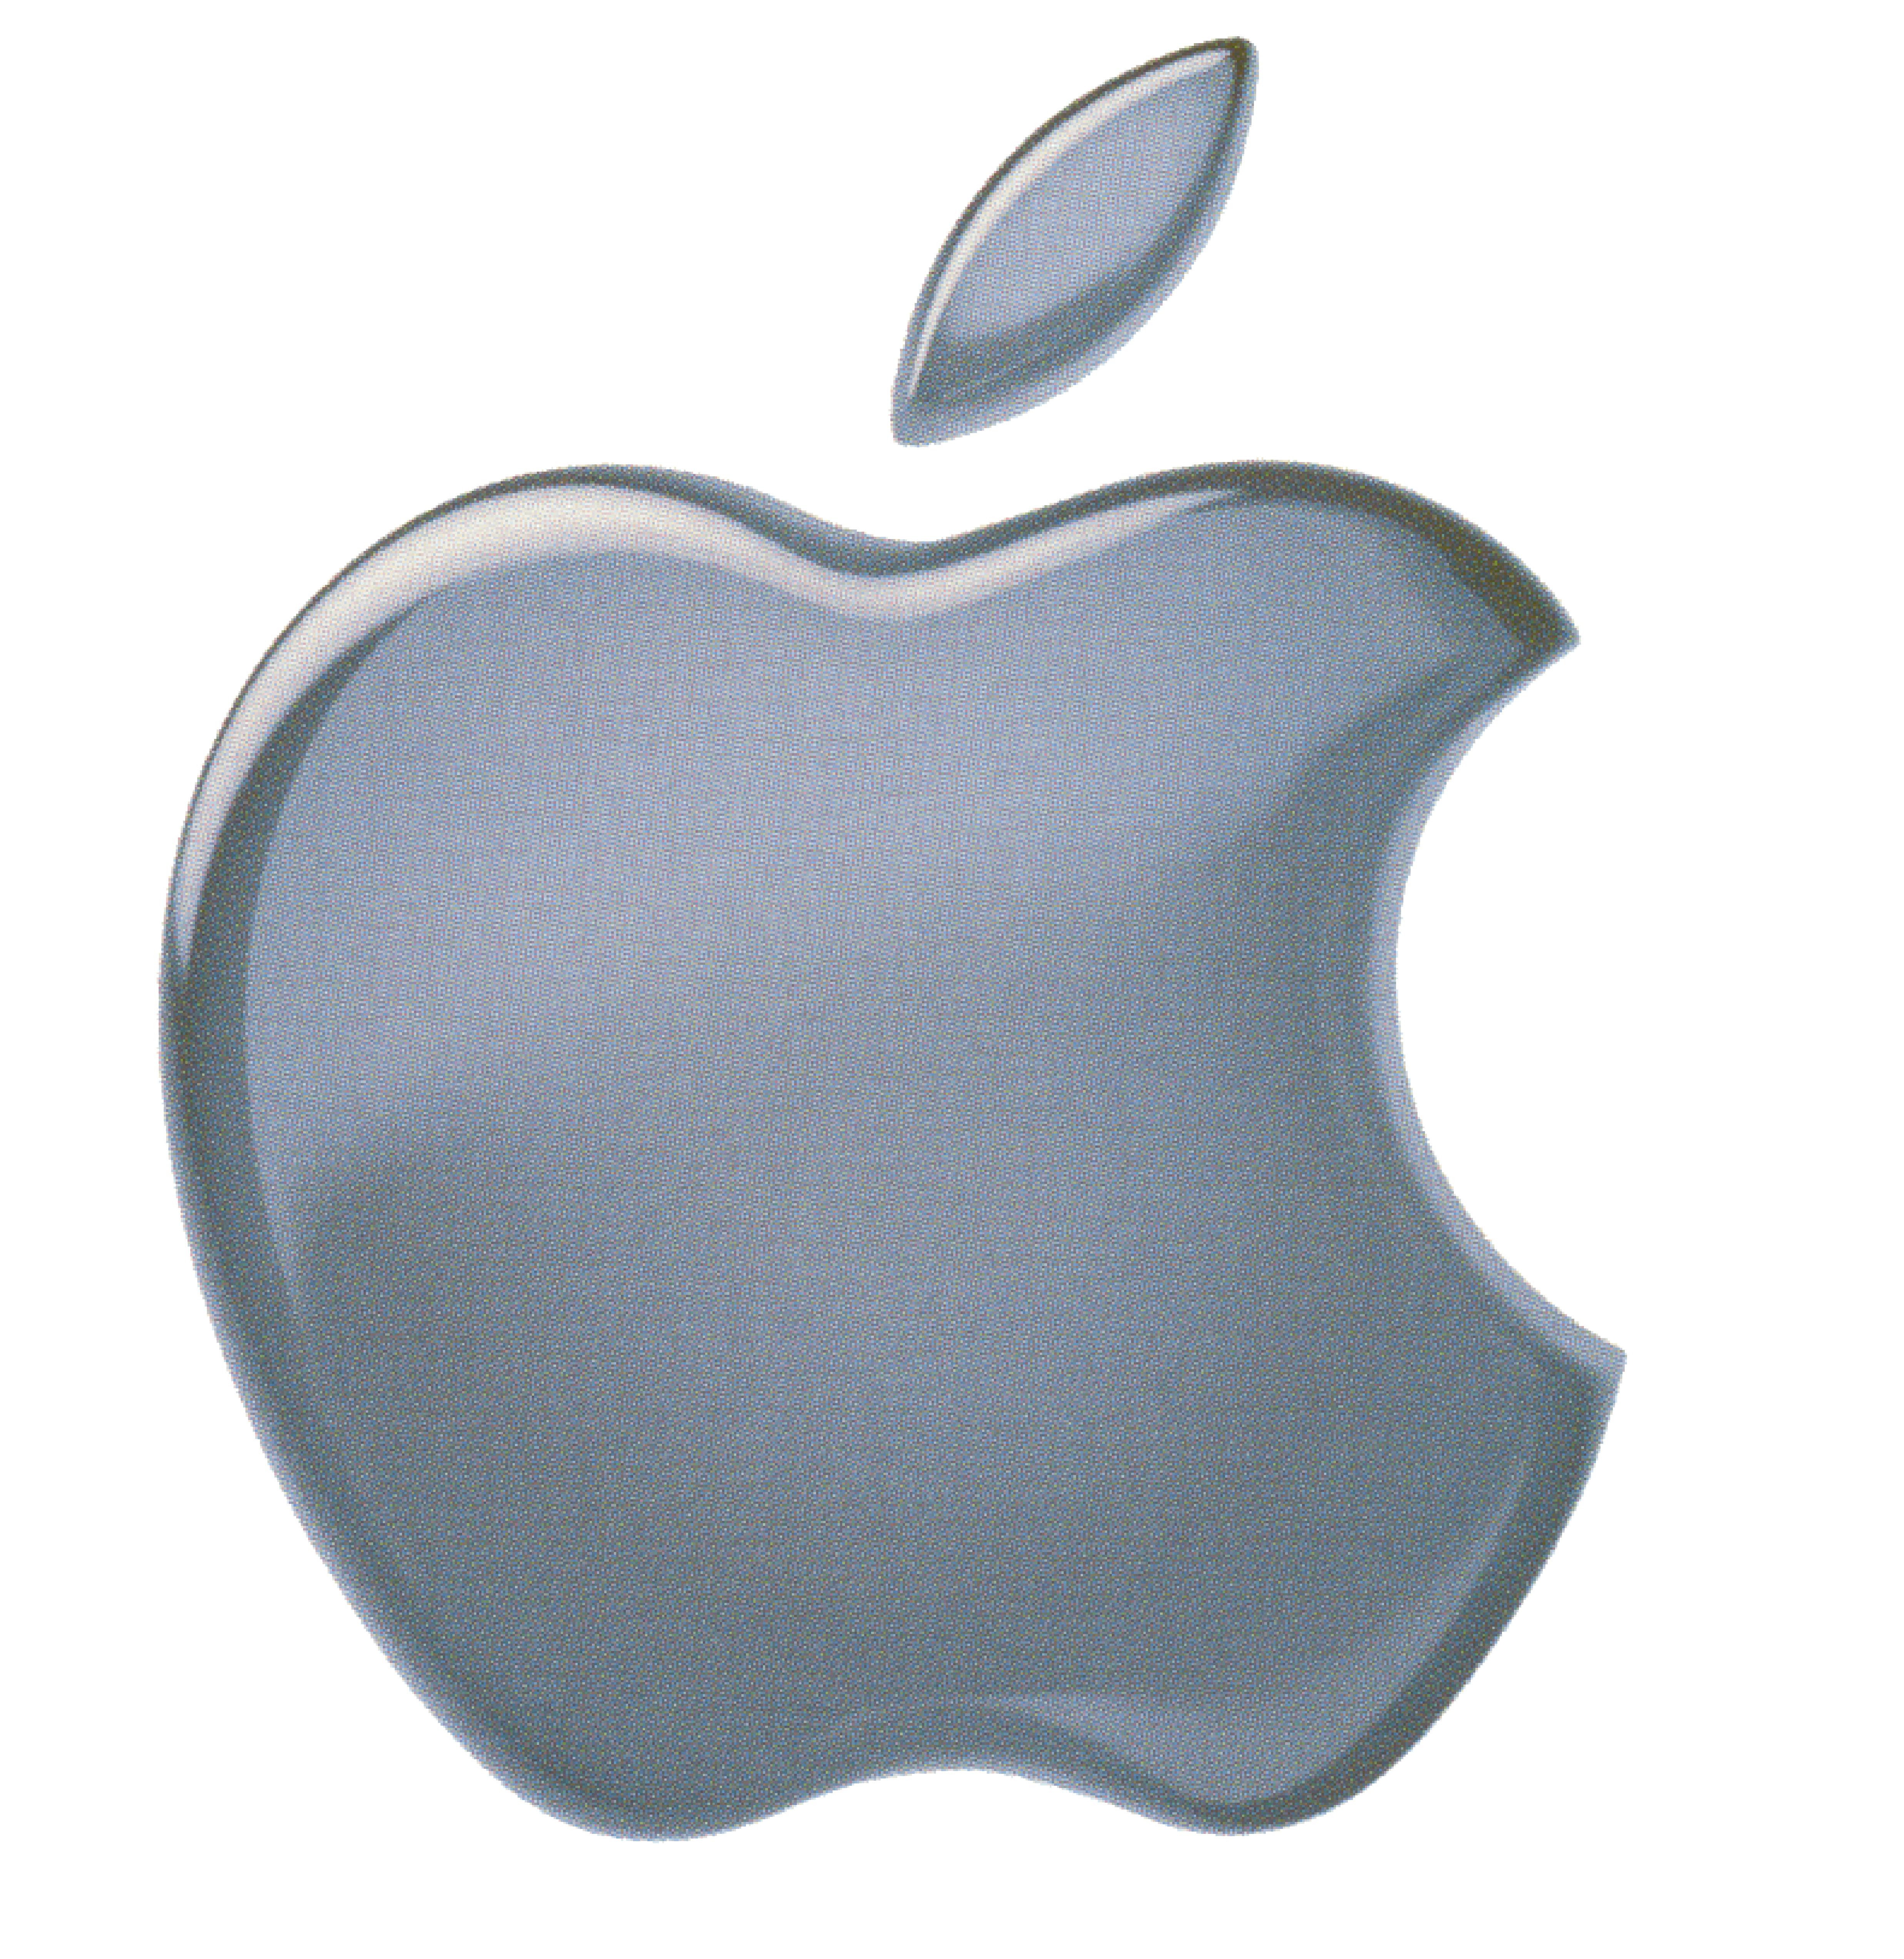 icon apple logo image free #14913 - free icons and png backgrounds